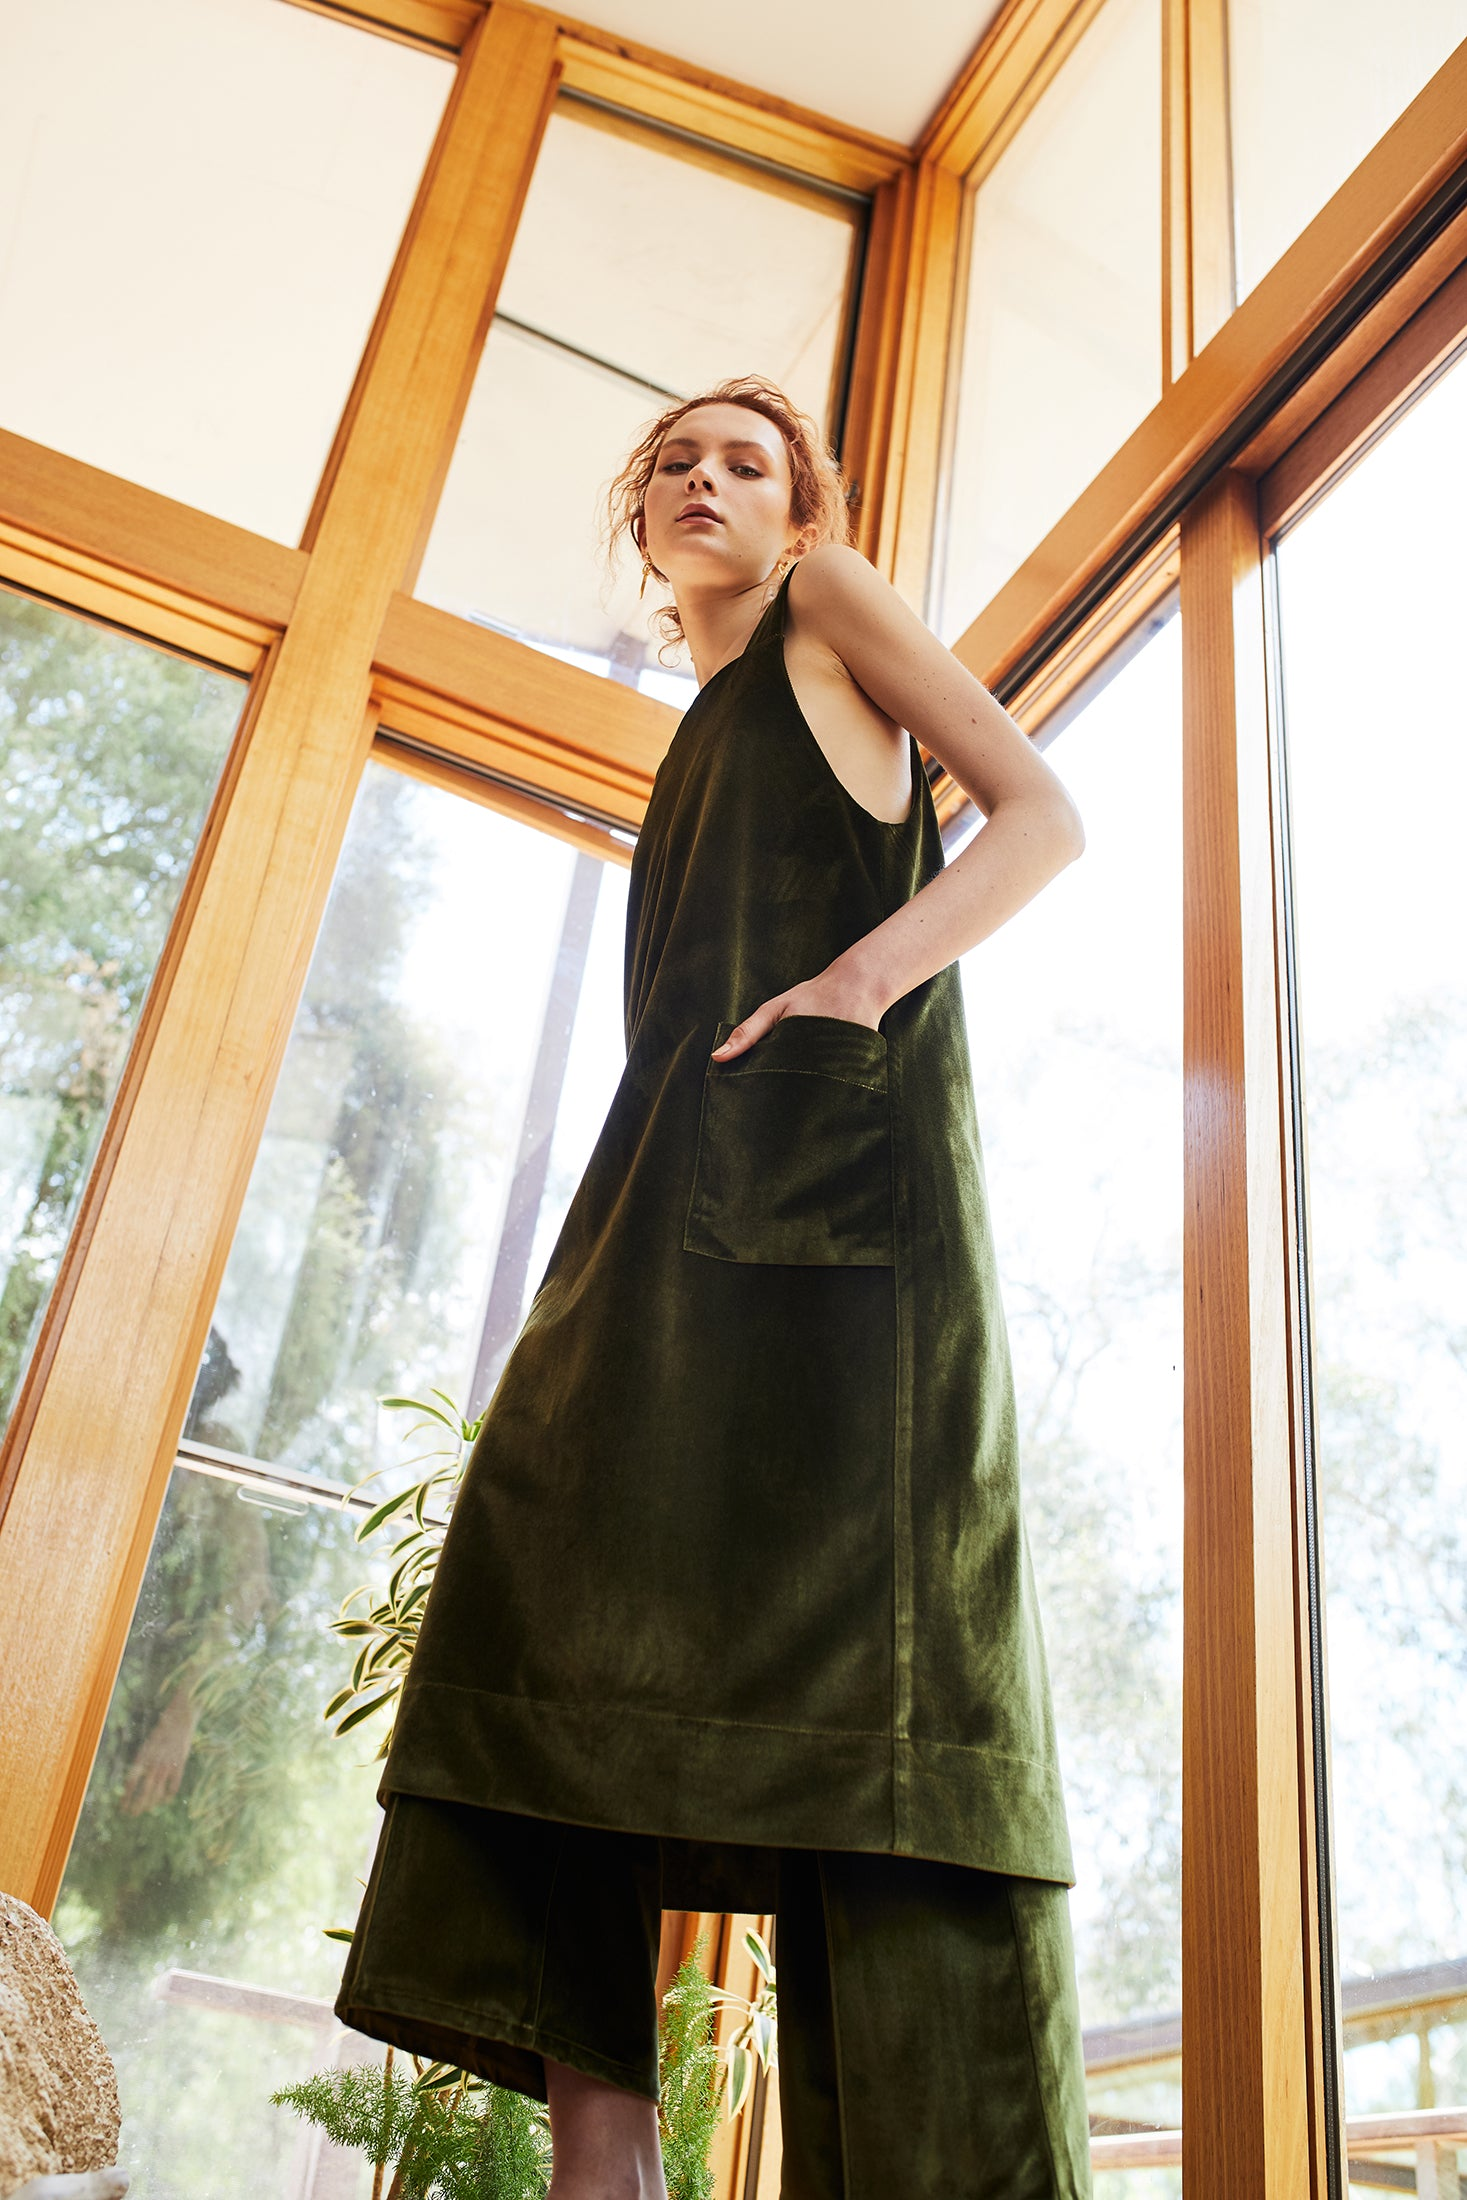 keegan AW19 Woodland Campaign Ethical Fashion Made in Melbourne Australia Green Velvet Pinafore Dress